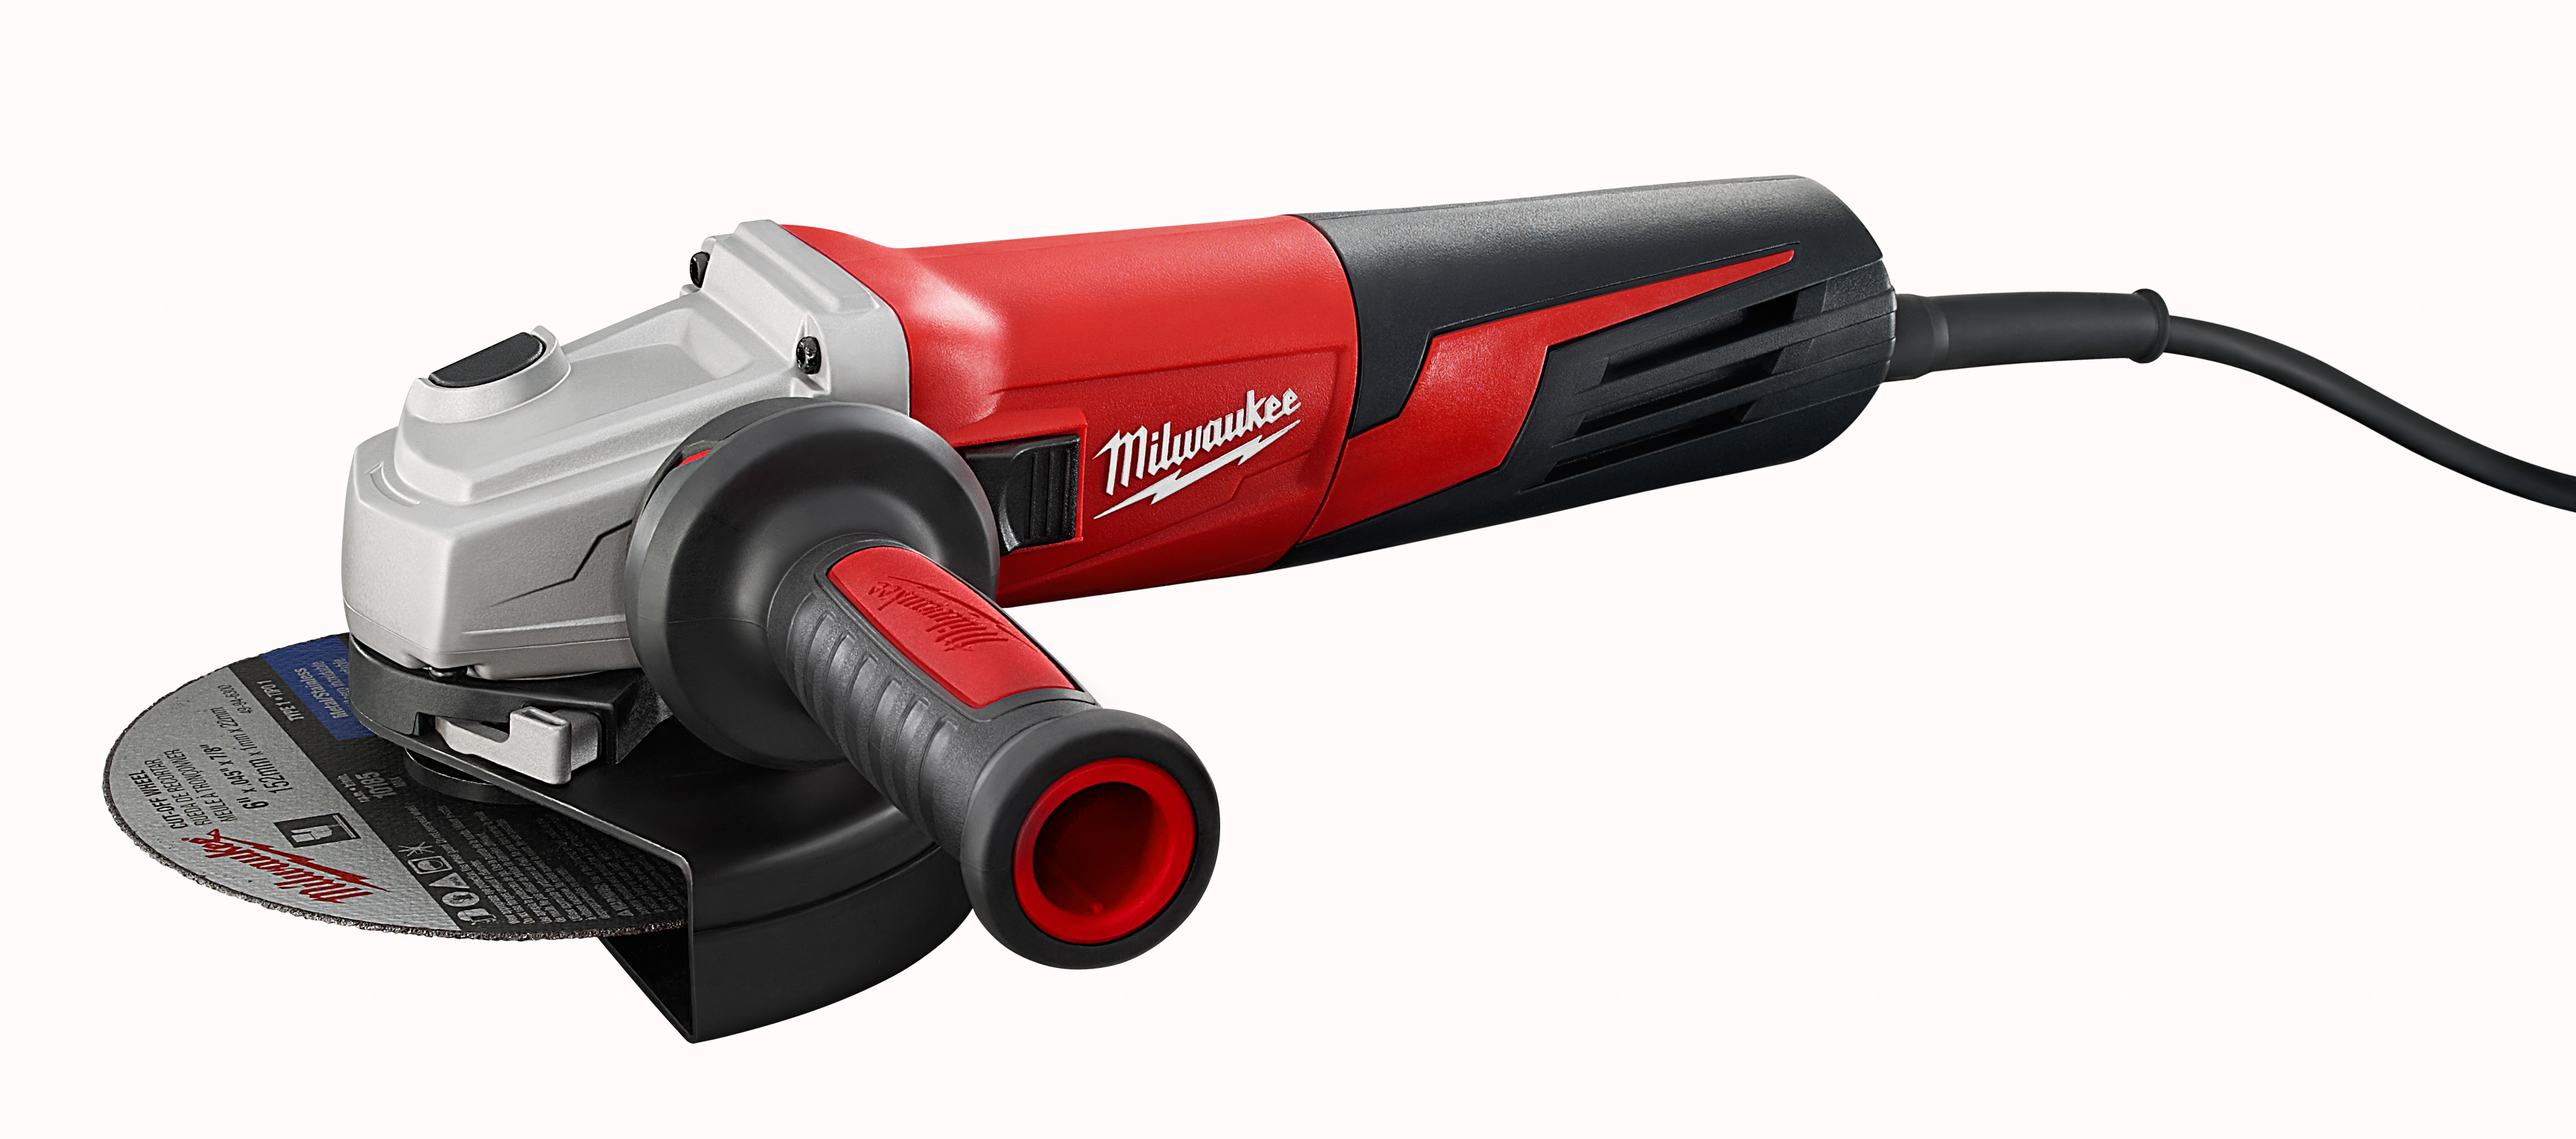 Milwaukee® 6161-33 Double Insulated Small Angle Grinder, 6 in Dia Wheel, 5/8-11 UNC Arbor/Shank, 120 VAC, Red